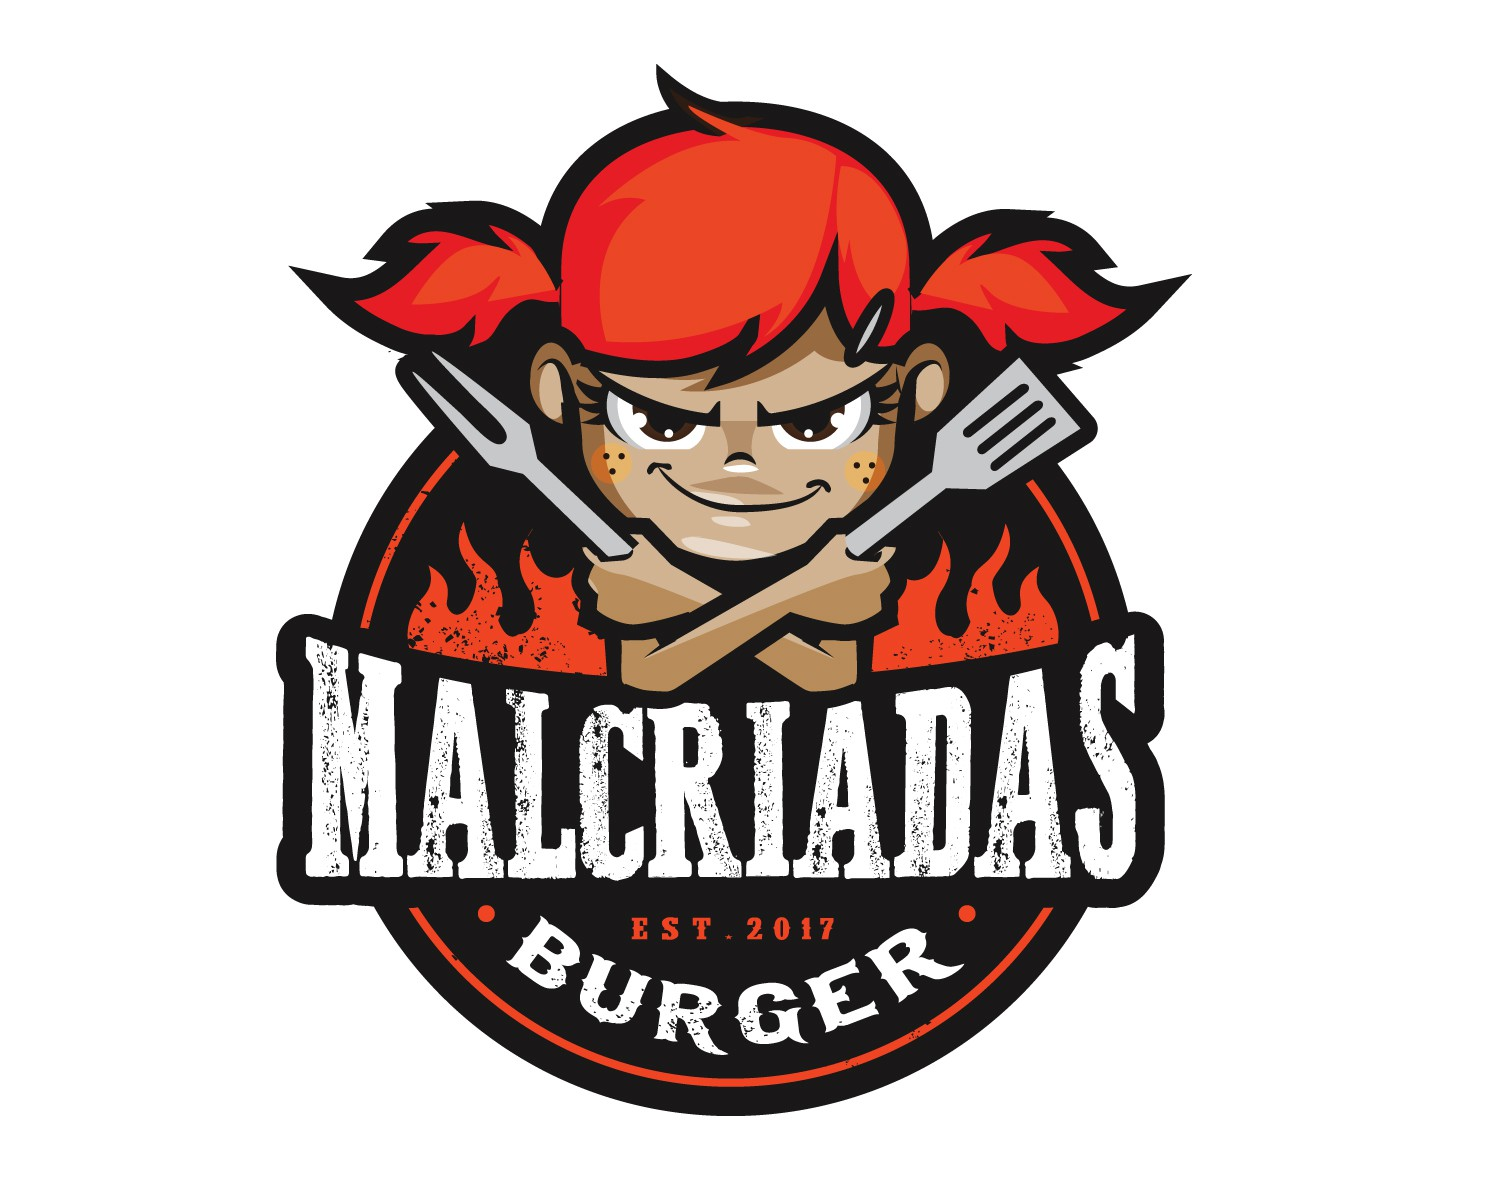 Participate on the next franchise boom. We sell the best hamburgers in town